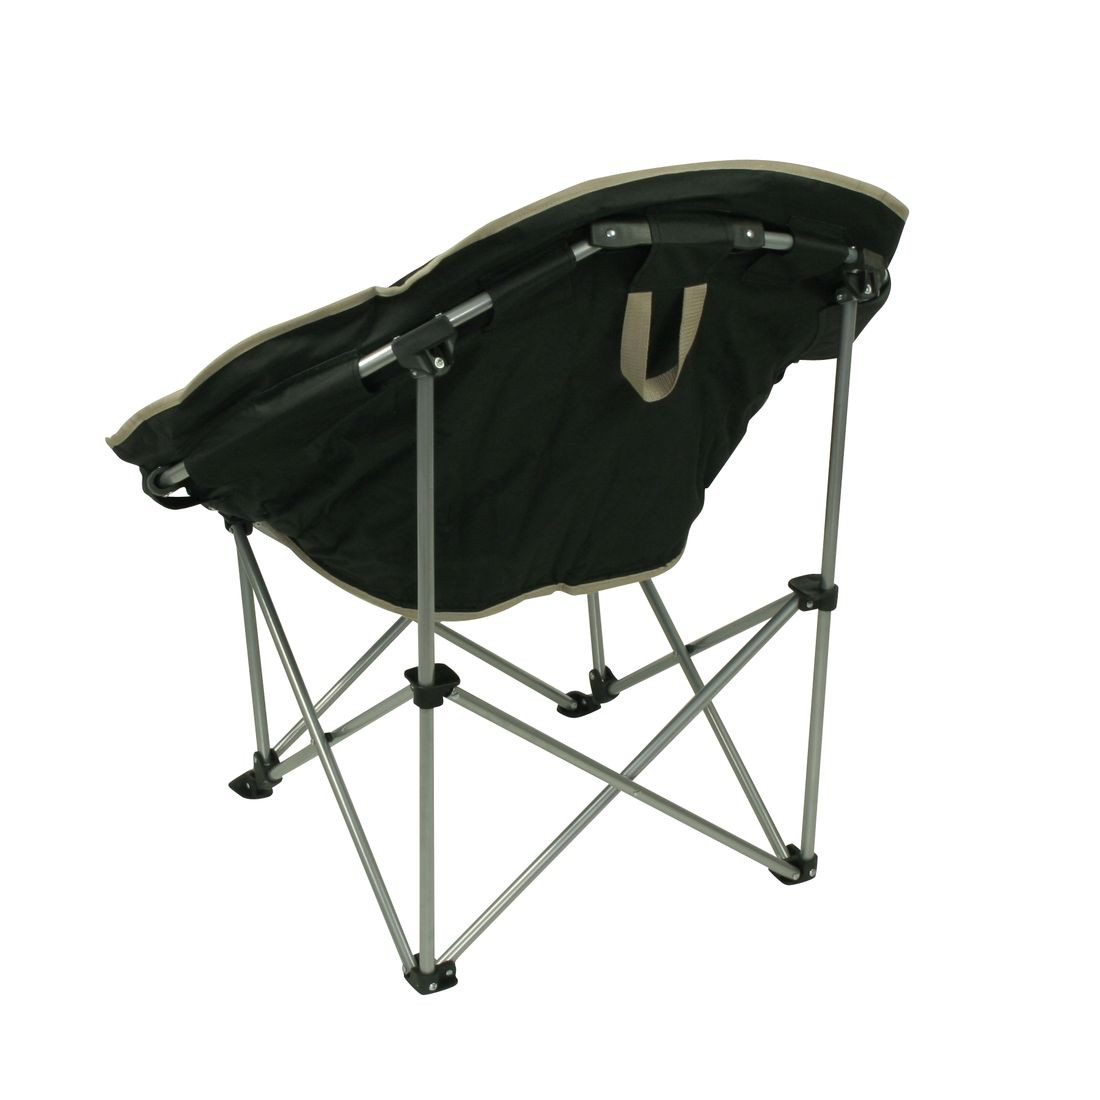 Handy Camping Stools ~ T moonchair relax camping chair max kg very handy